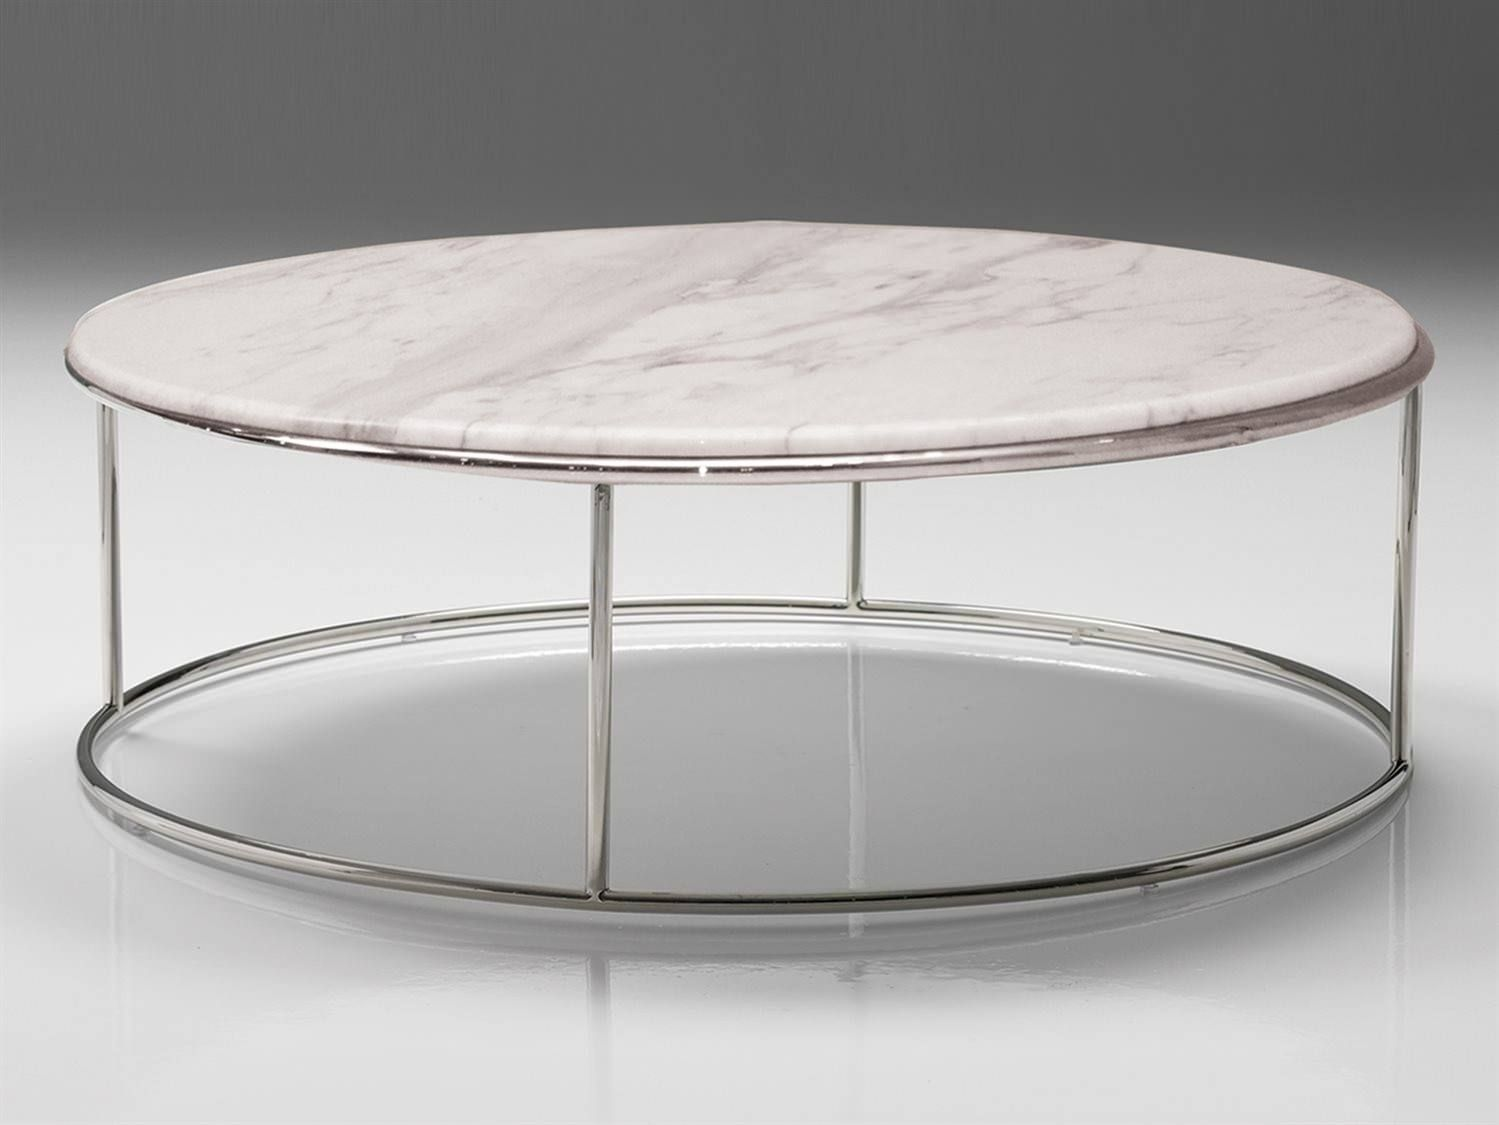 The Meaning Of White Round Coffee Table Coffee Table Round Coffee Table White Round Coffee Table [ 1125 x 1499 Pixel ]